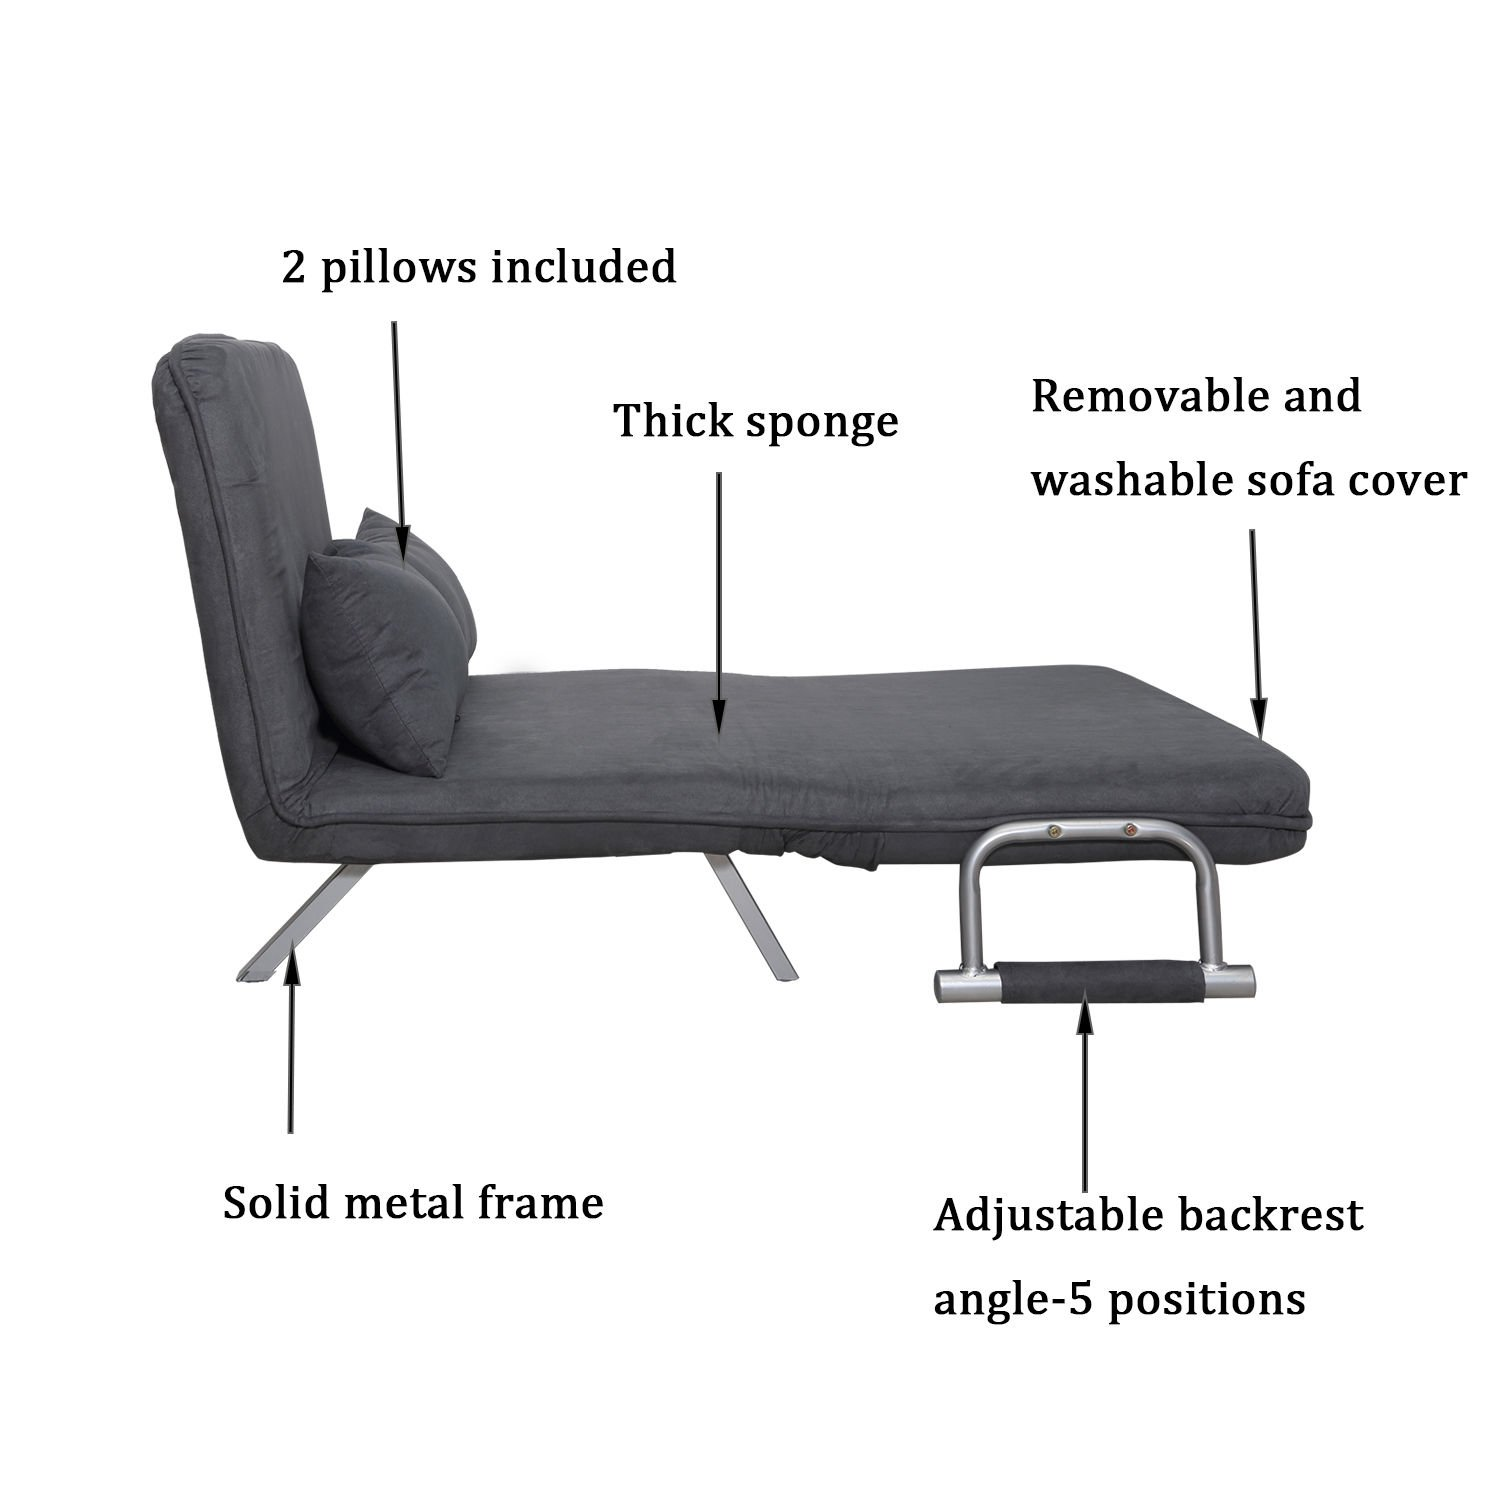 Tidyard Twin Size Folding Sleeper Bed Chair 5 Adjustable Position Convertible Reclining Couch with Pillow Powder Coated Steel Sofa Chair for Living Room Office Home Cream Grey